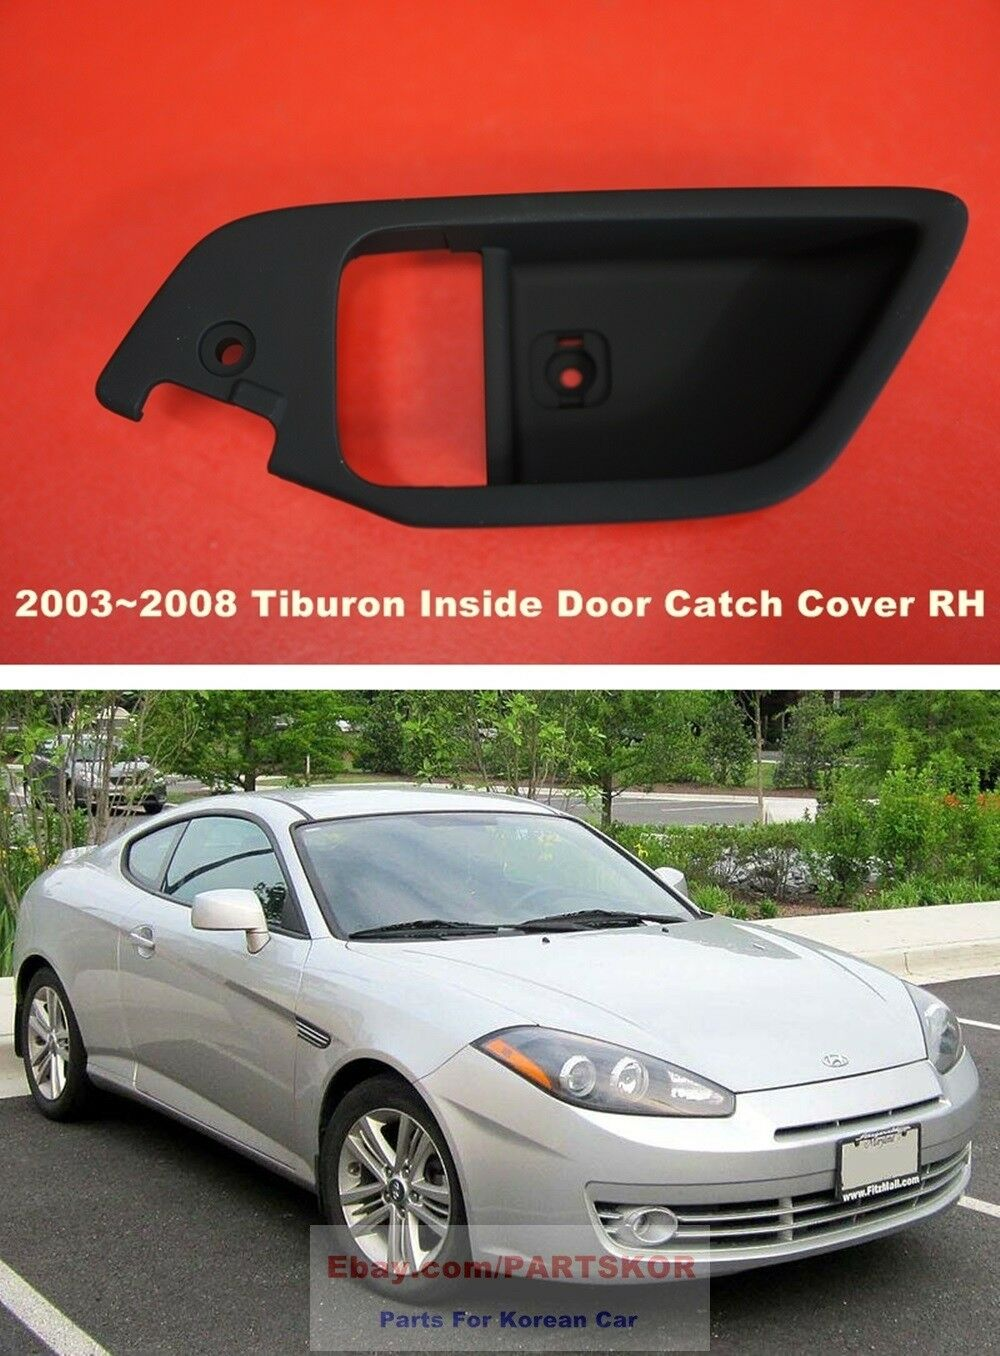 Amazing Door Handle Hyundai Tiburon 2003 Images Image Design House Plan